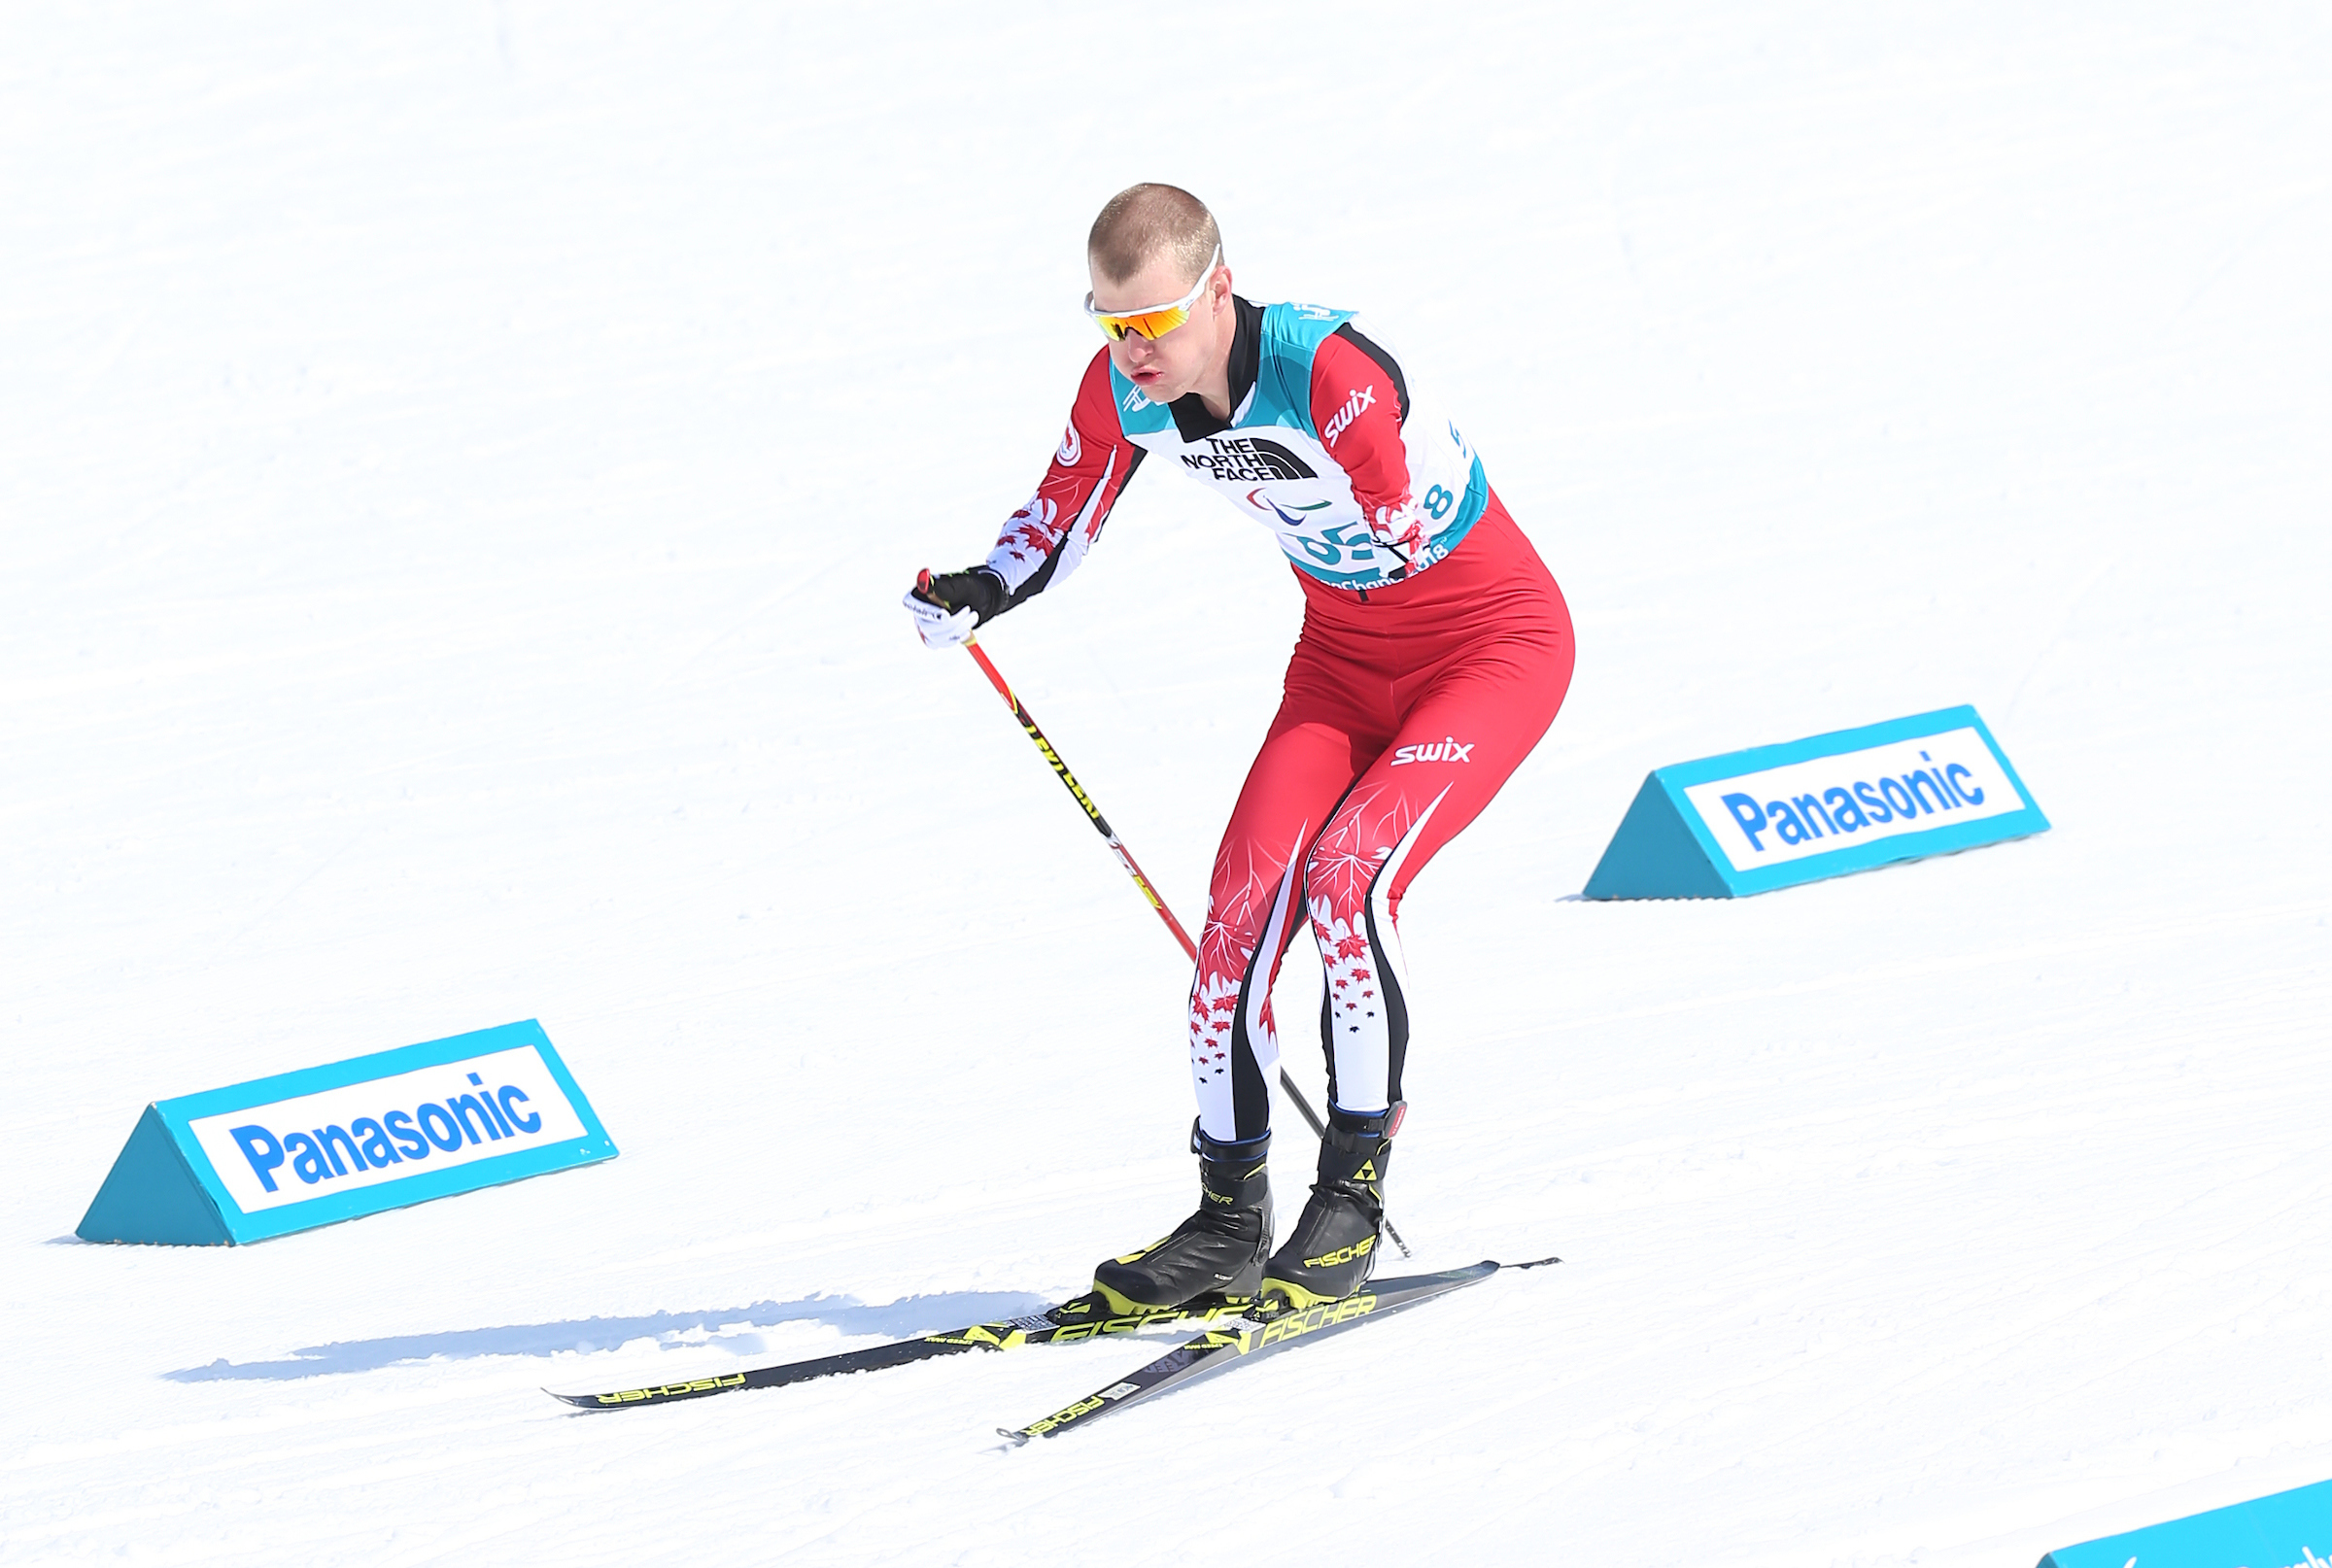 Eight-time Paralympic medallist Mark Arendz, seen here competing at the PyeongChang 2018 Paralympic Winter Games.